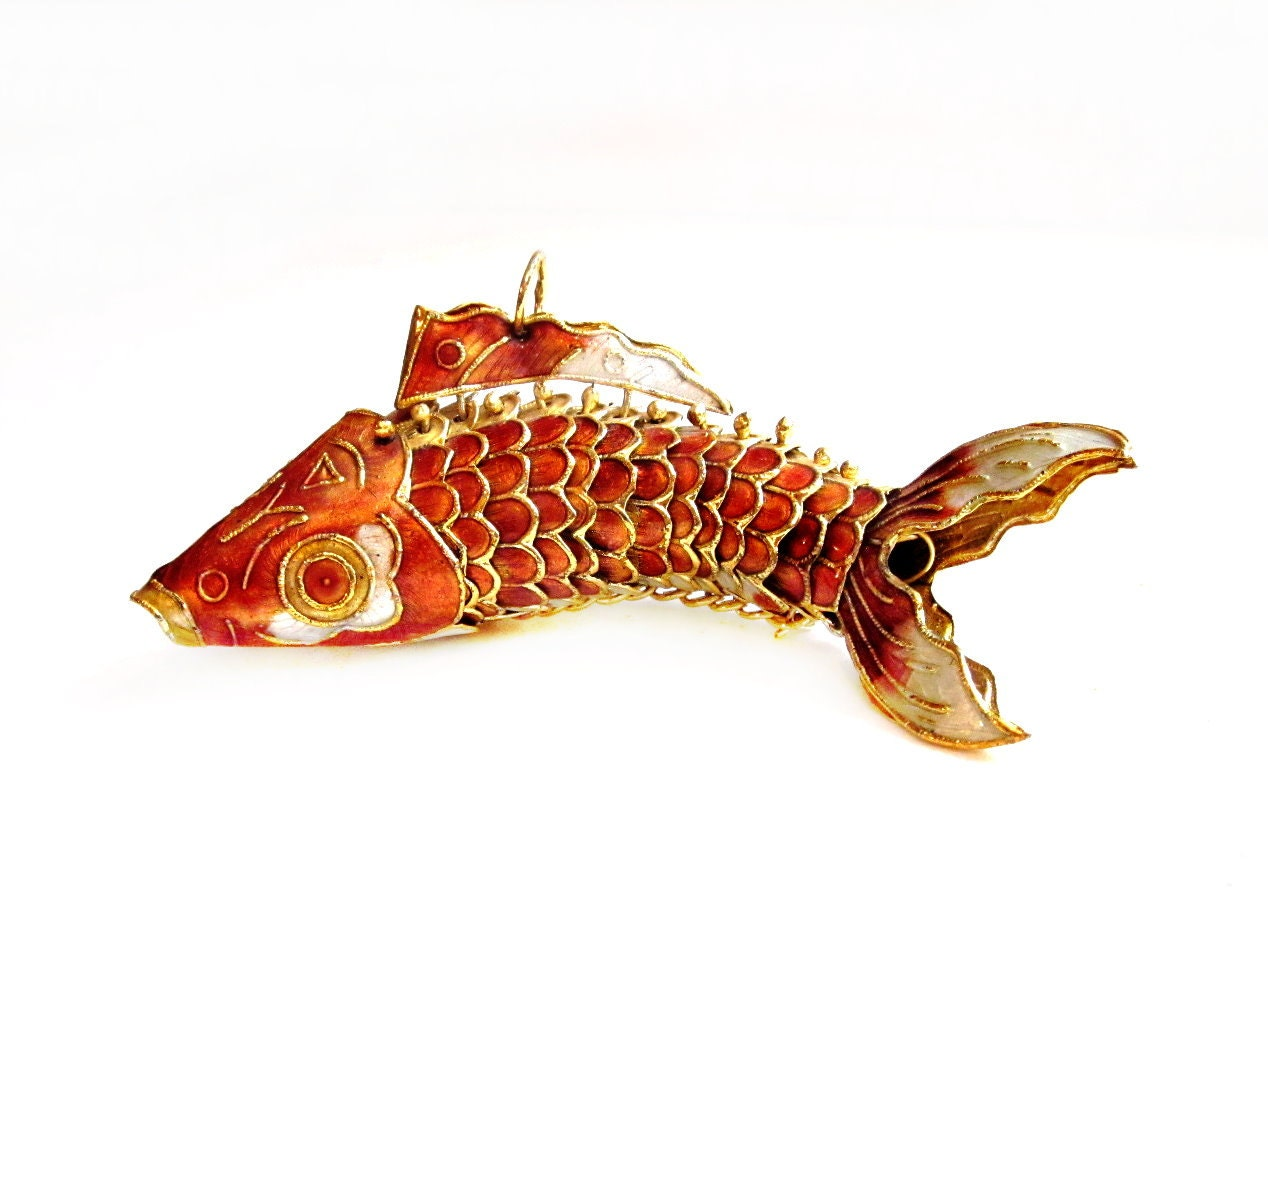 articulated metal enamel koi fish ornament figurine